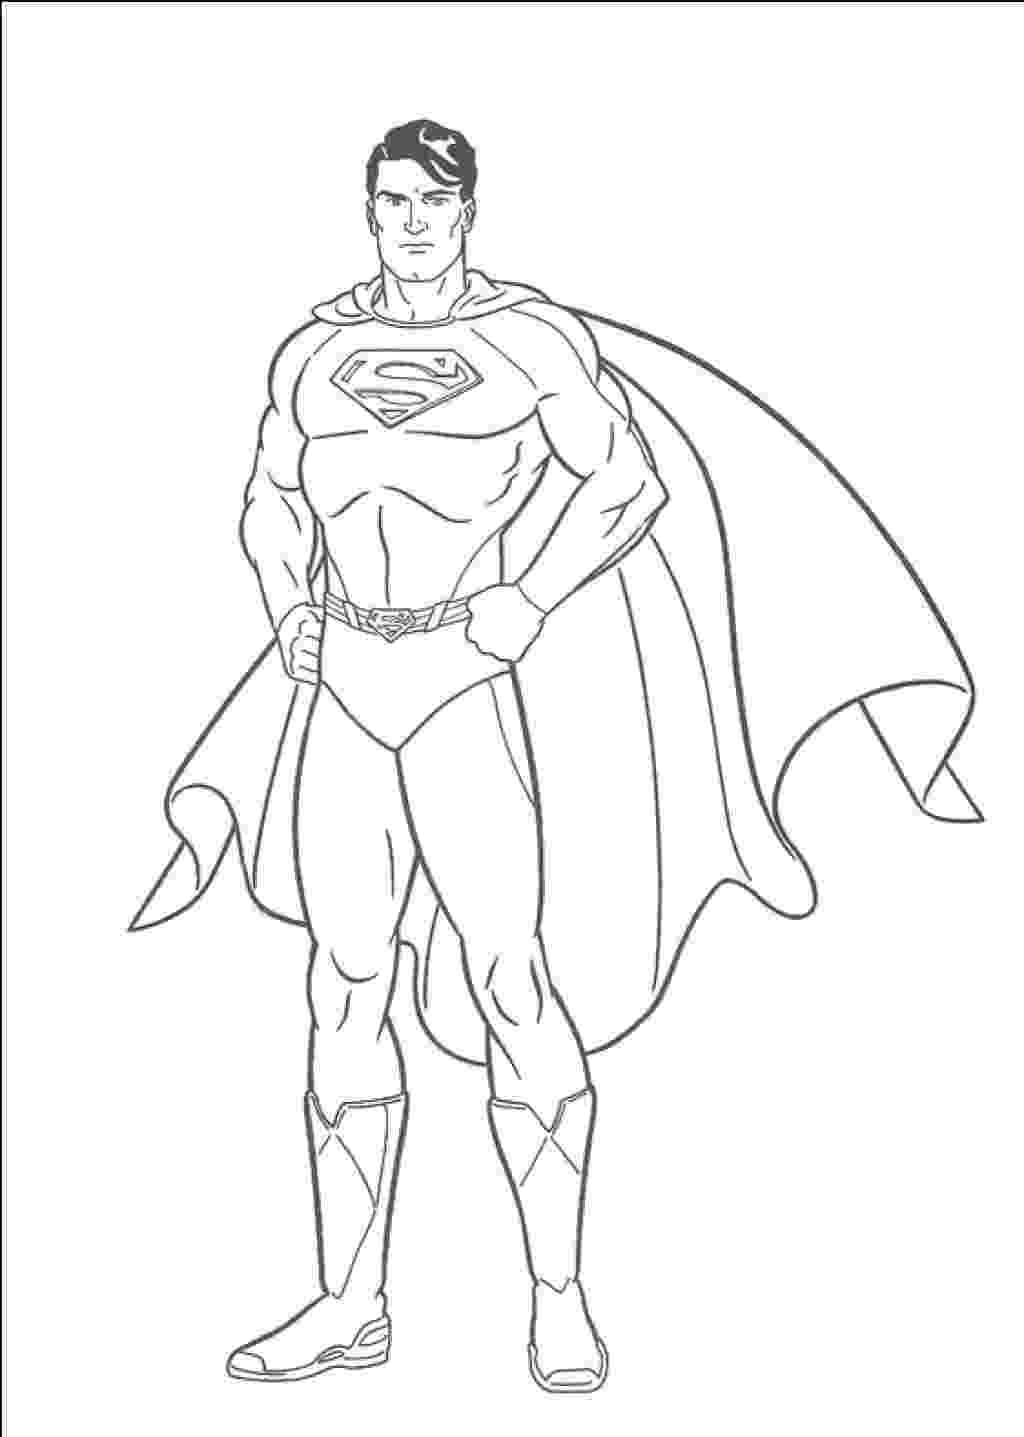 superman coloring pages printable free printable superman coloring pages for kids cool2bkids coloring pages superman printable